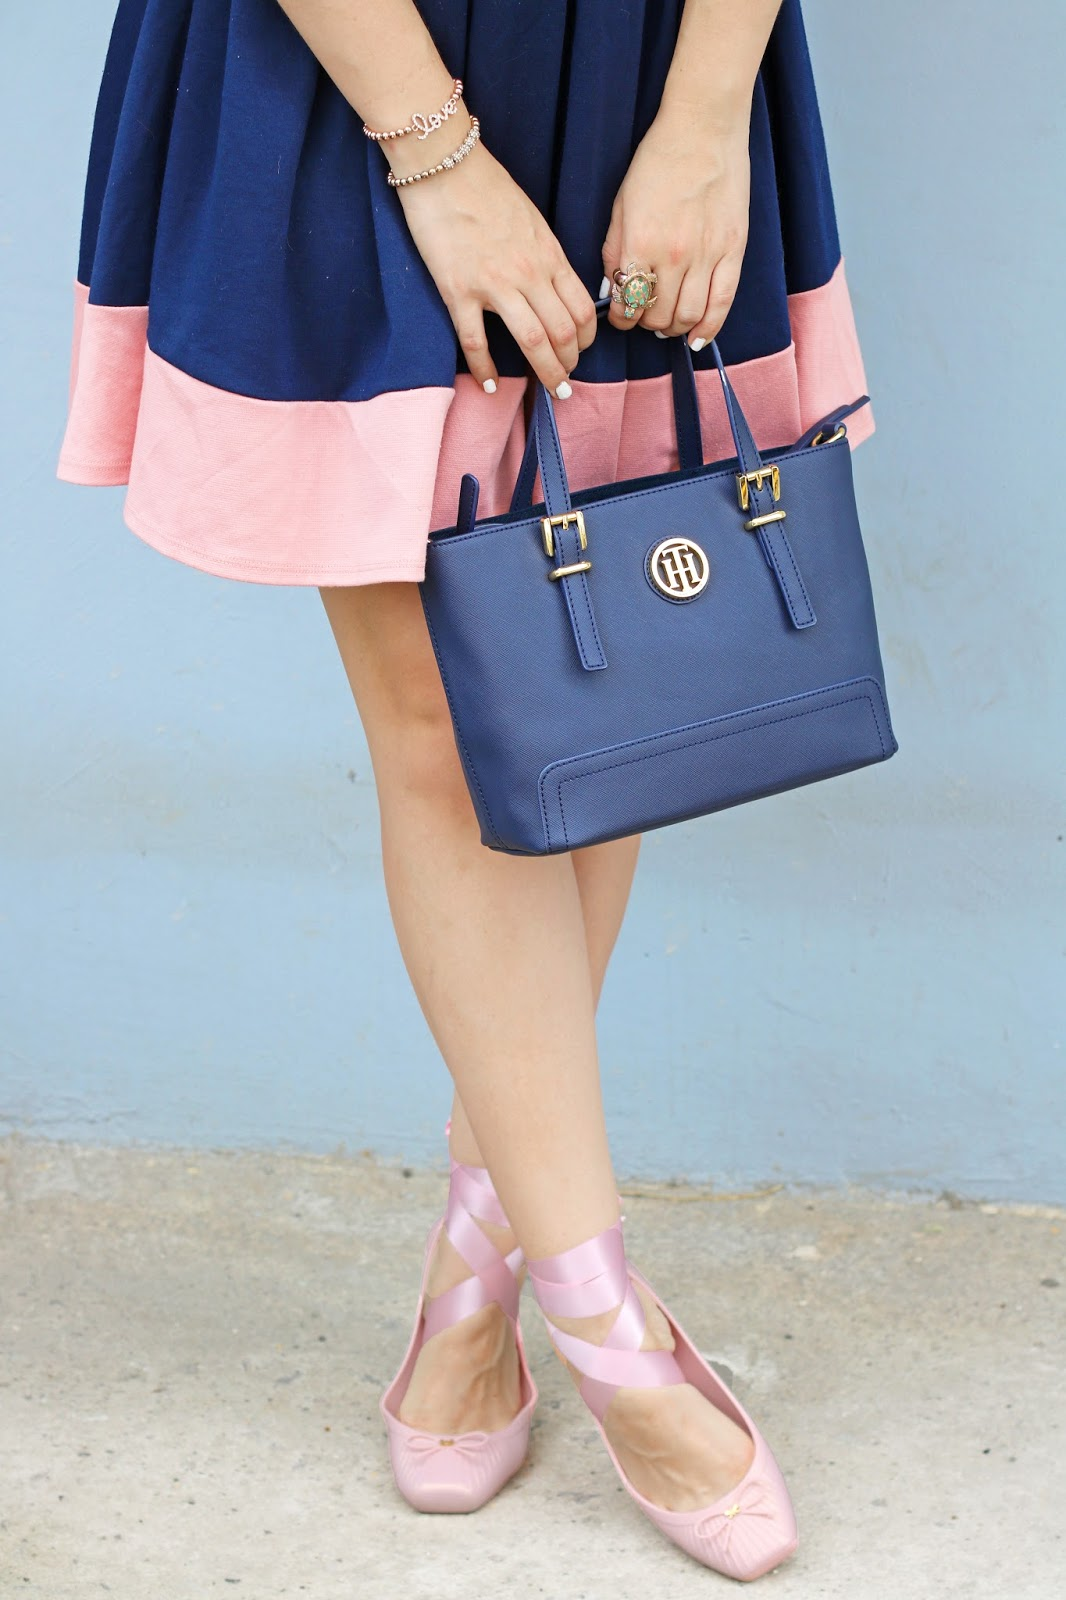 I am obsessed with these adorable pink lace up ballerina flats!